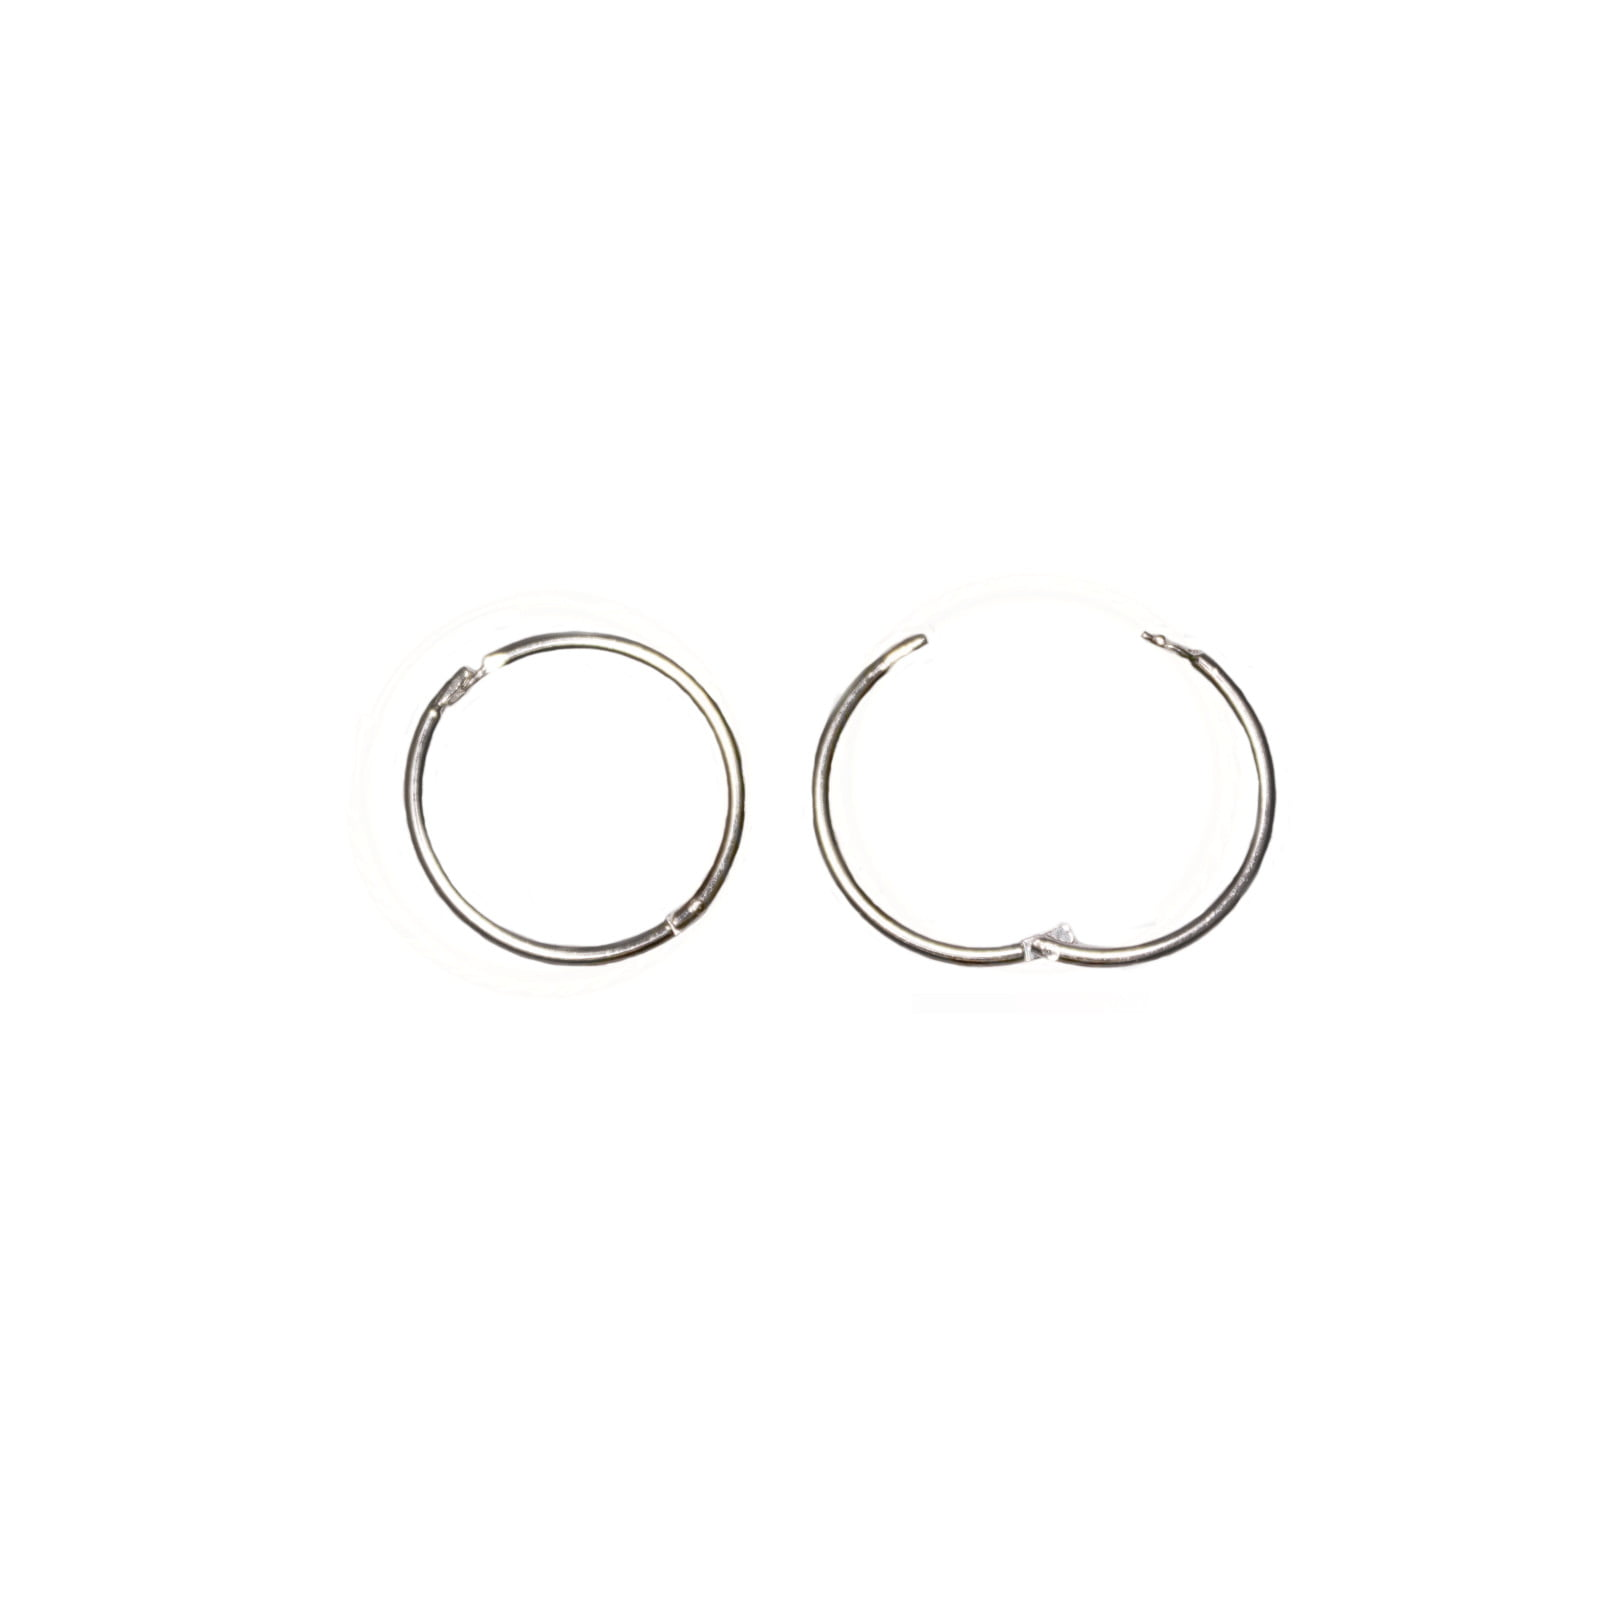 Pair of 925 Sterling silver hinged sleeper hoop earrings. 12mm across.